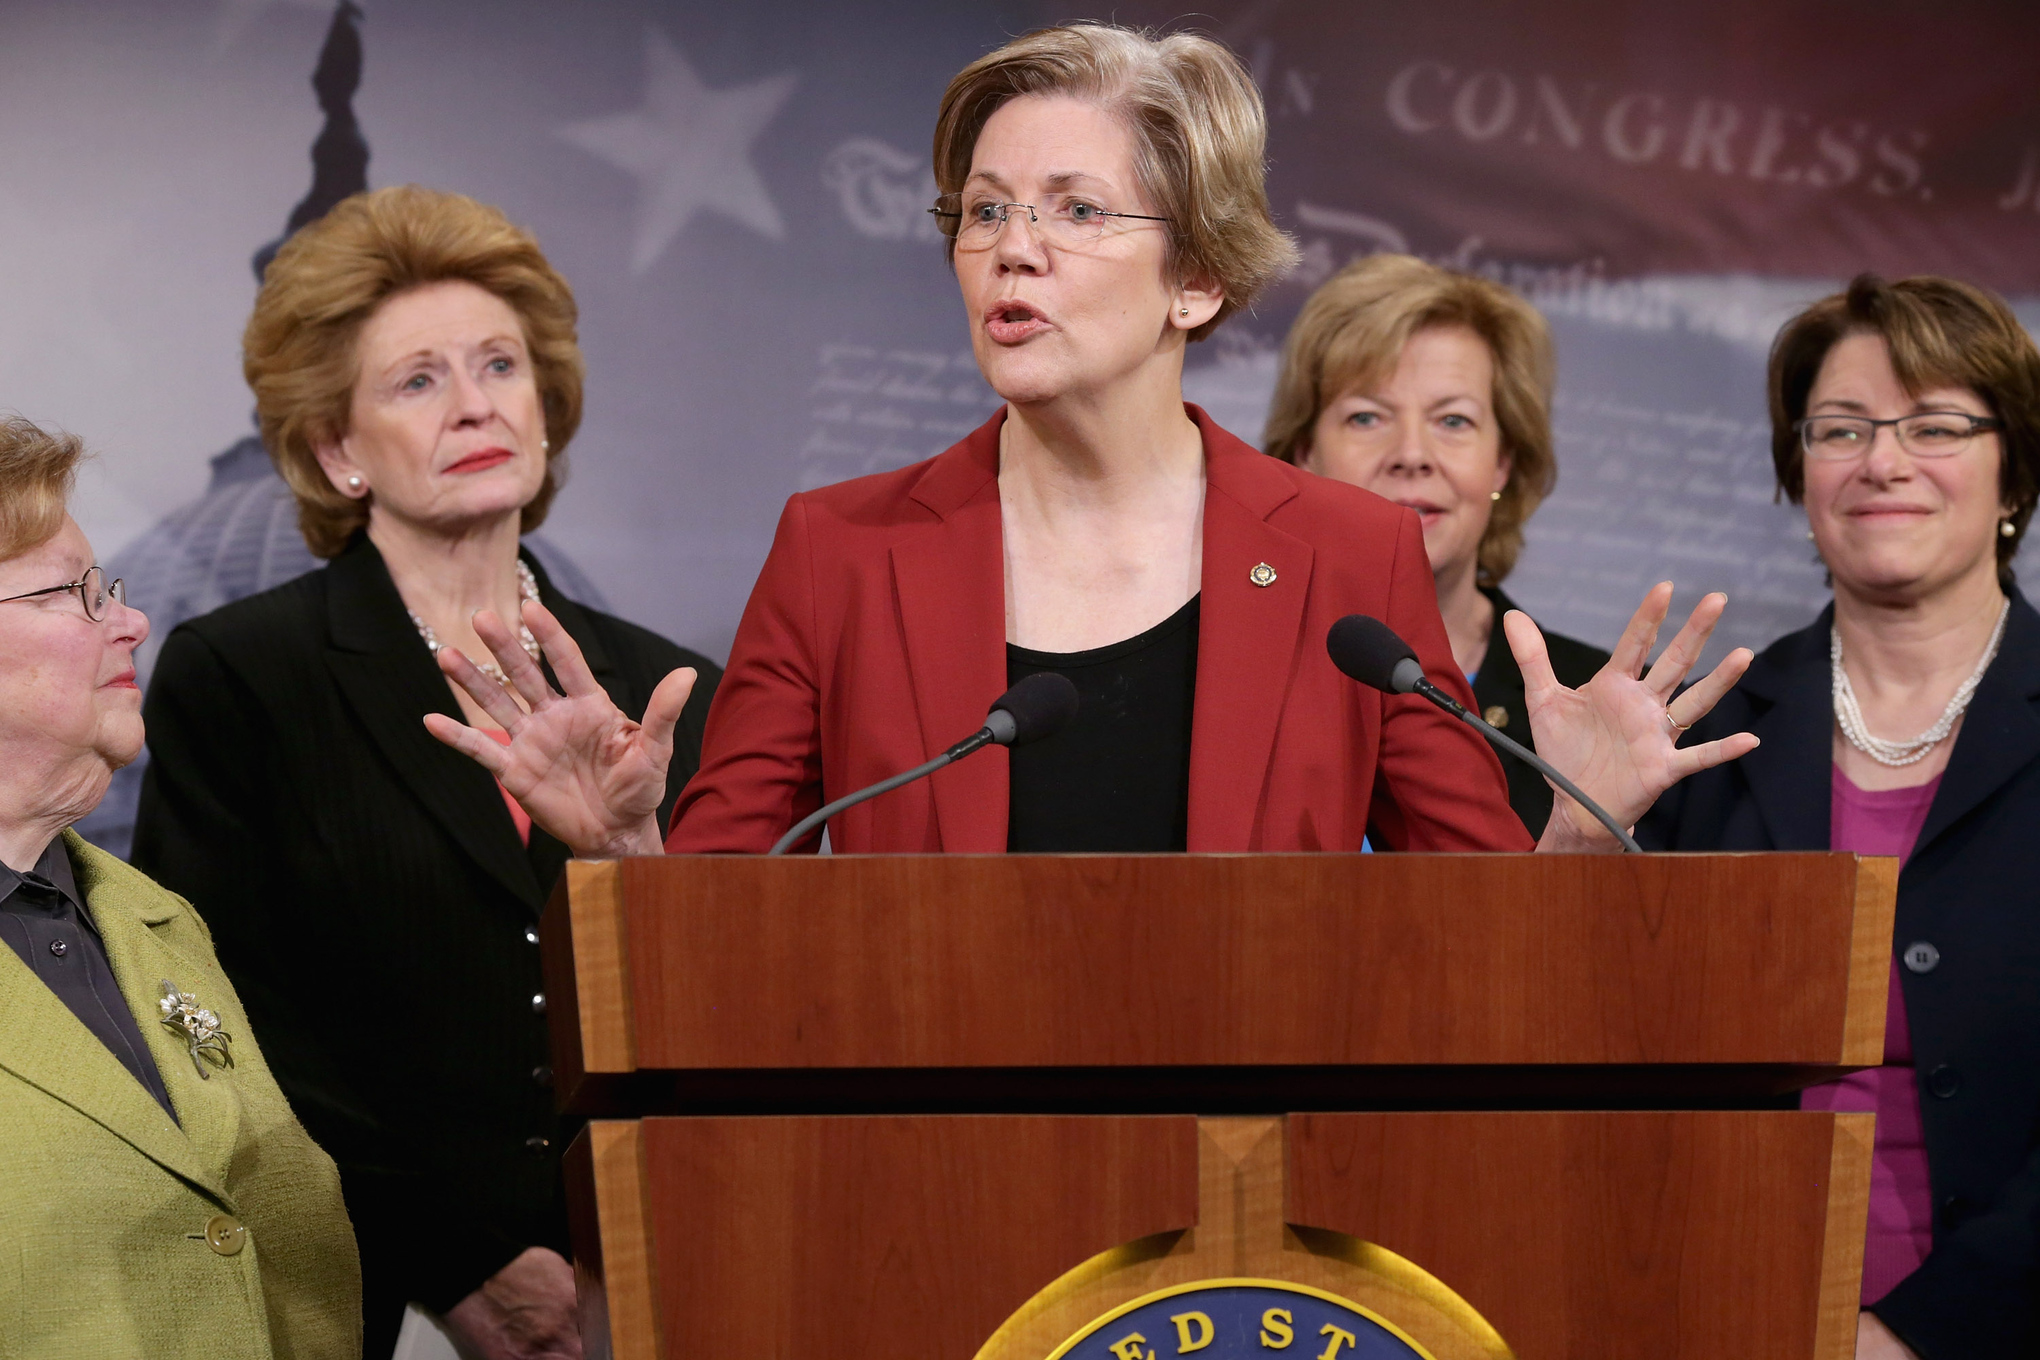 Elizabeth Warren calls for an investigation into Donald Trump's global conflicts of interest